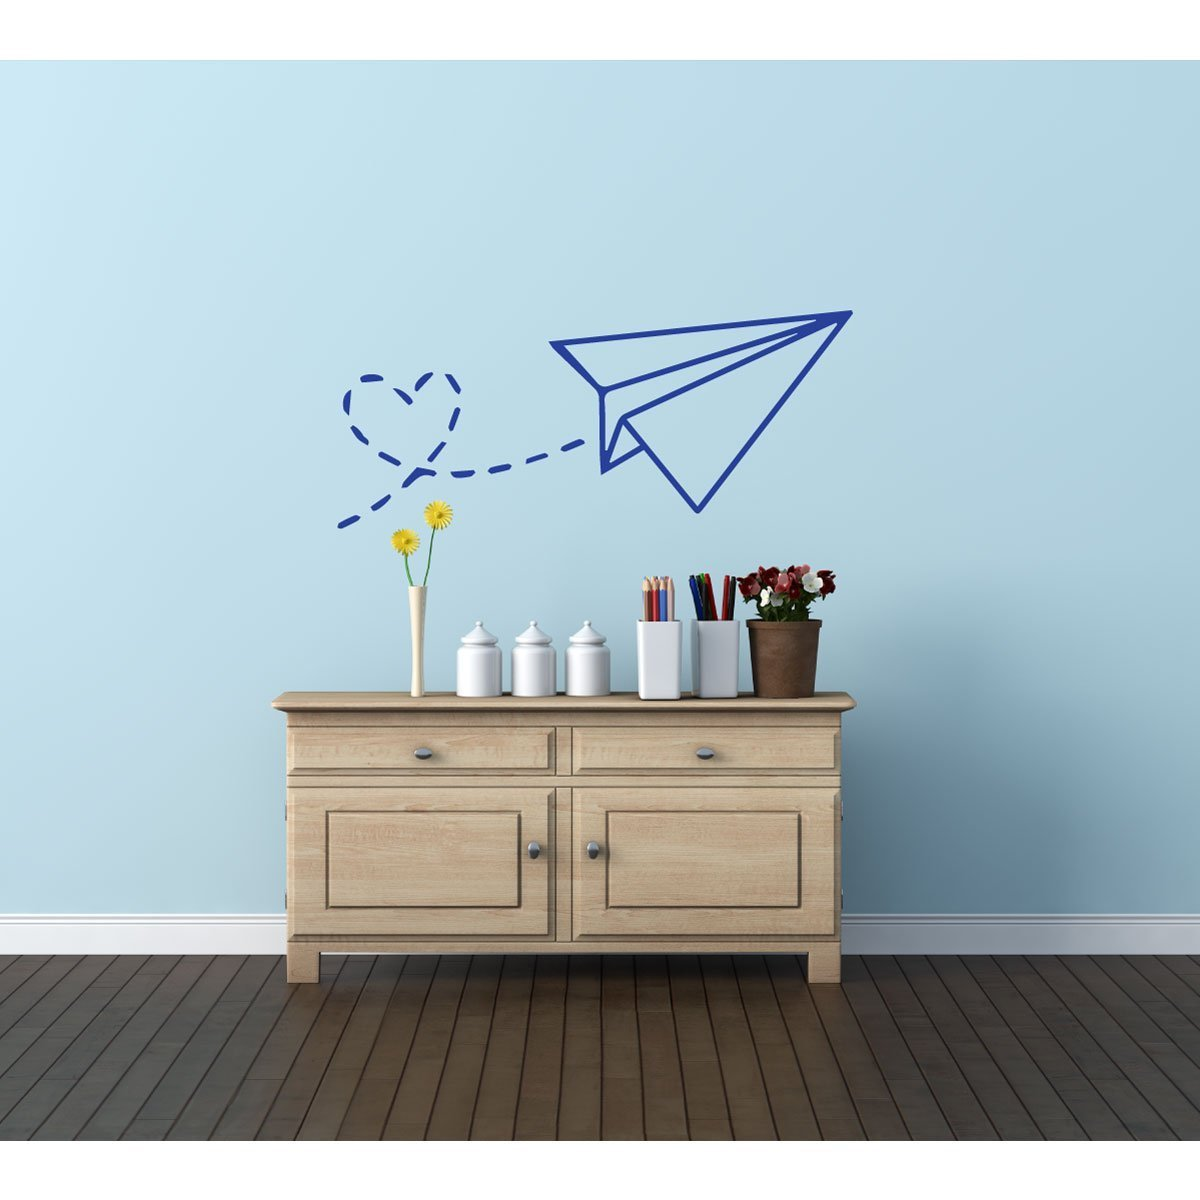 Wall Decals for Kids Rooms - Paper Airplane Vinyl Wall Decor